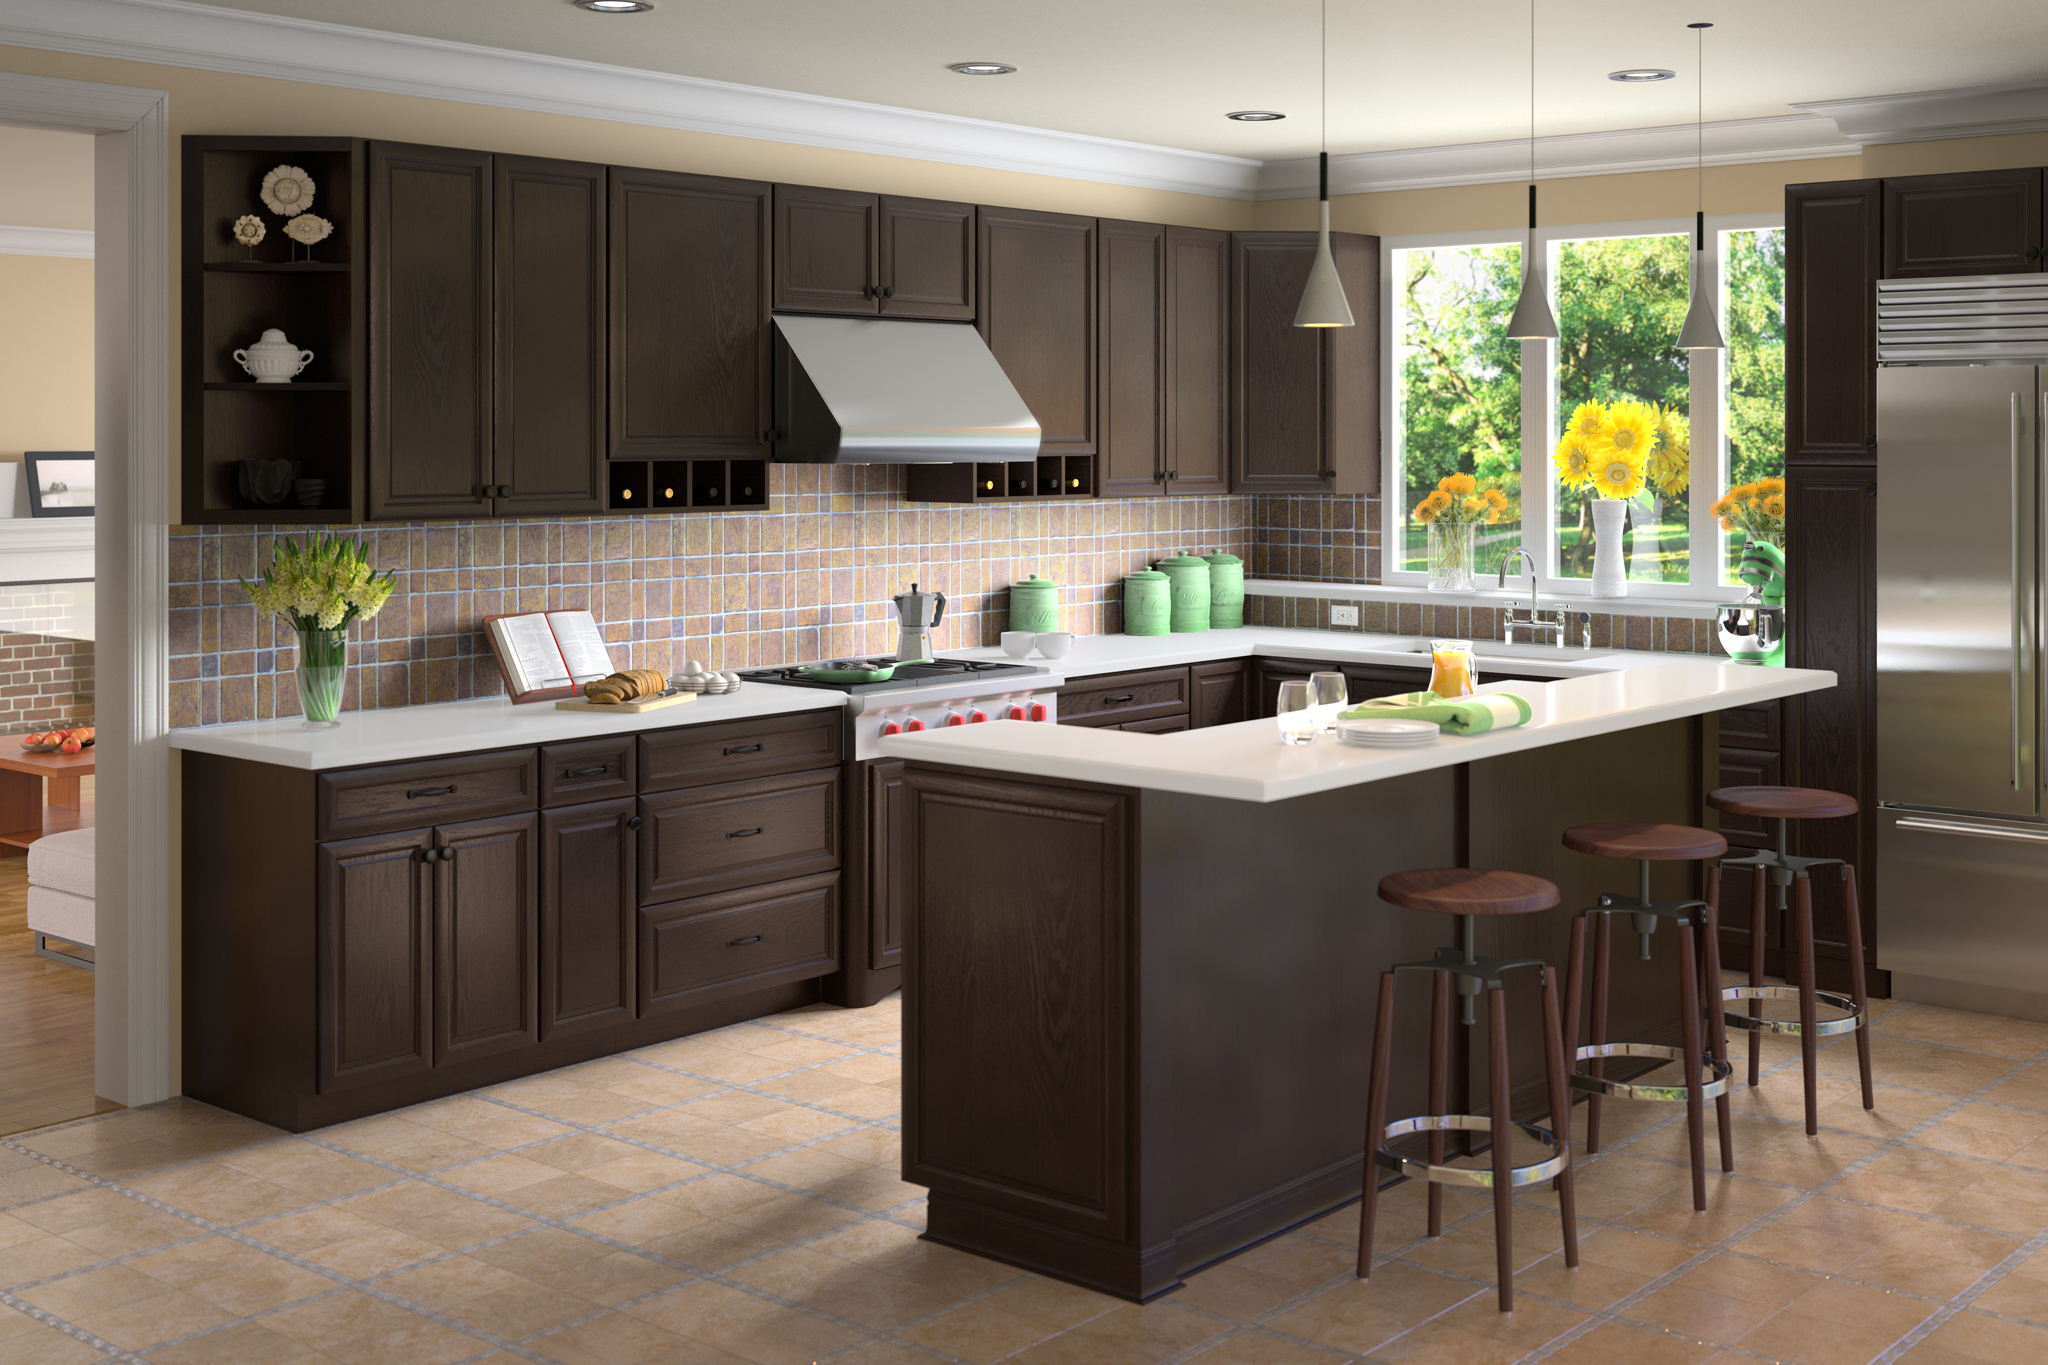 3d rendering of dark kitchen cabinetry and refrigerator